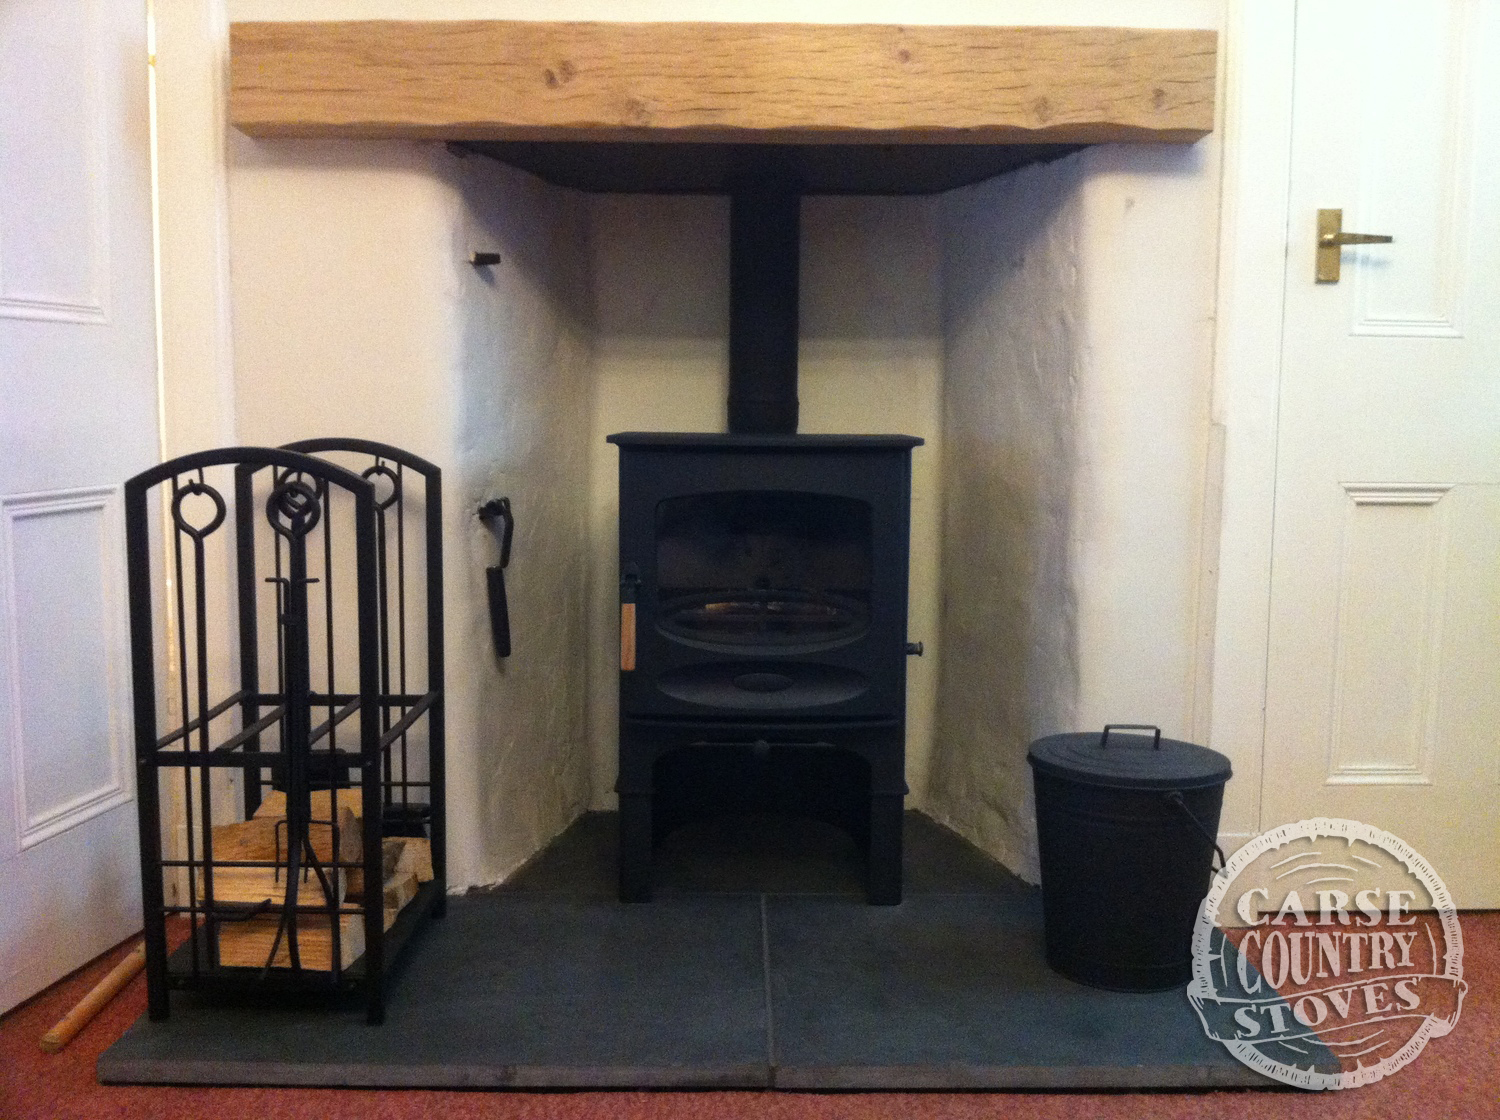 Carse Country Stoves IMG_1794.jpg